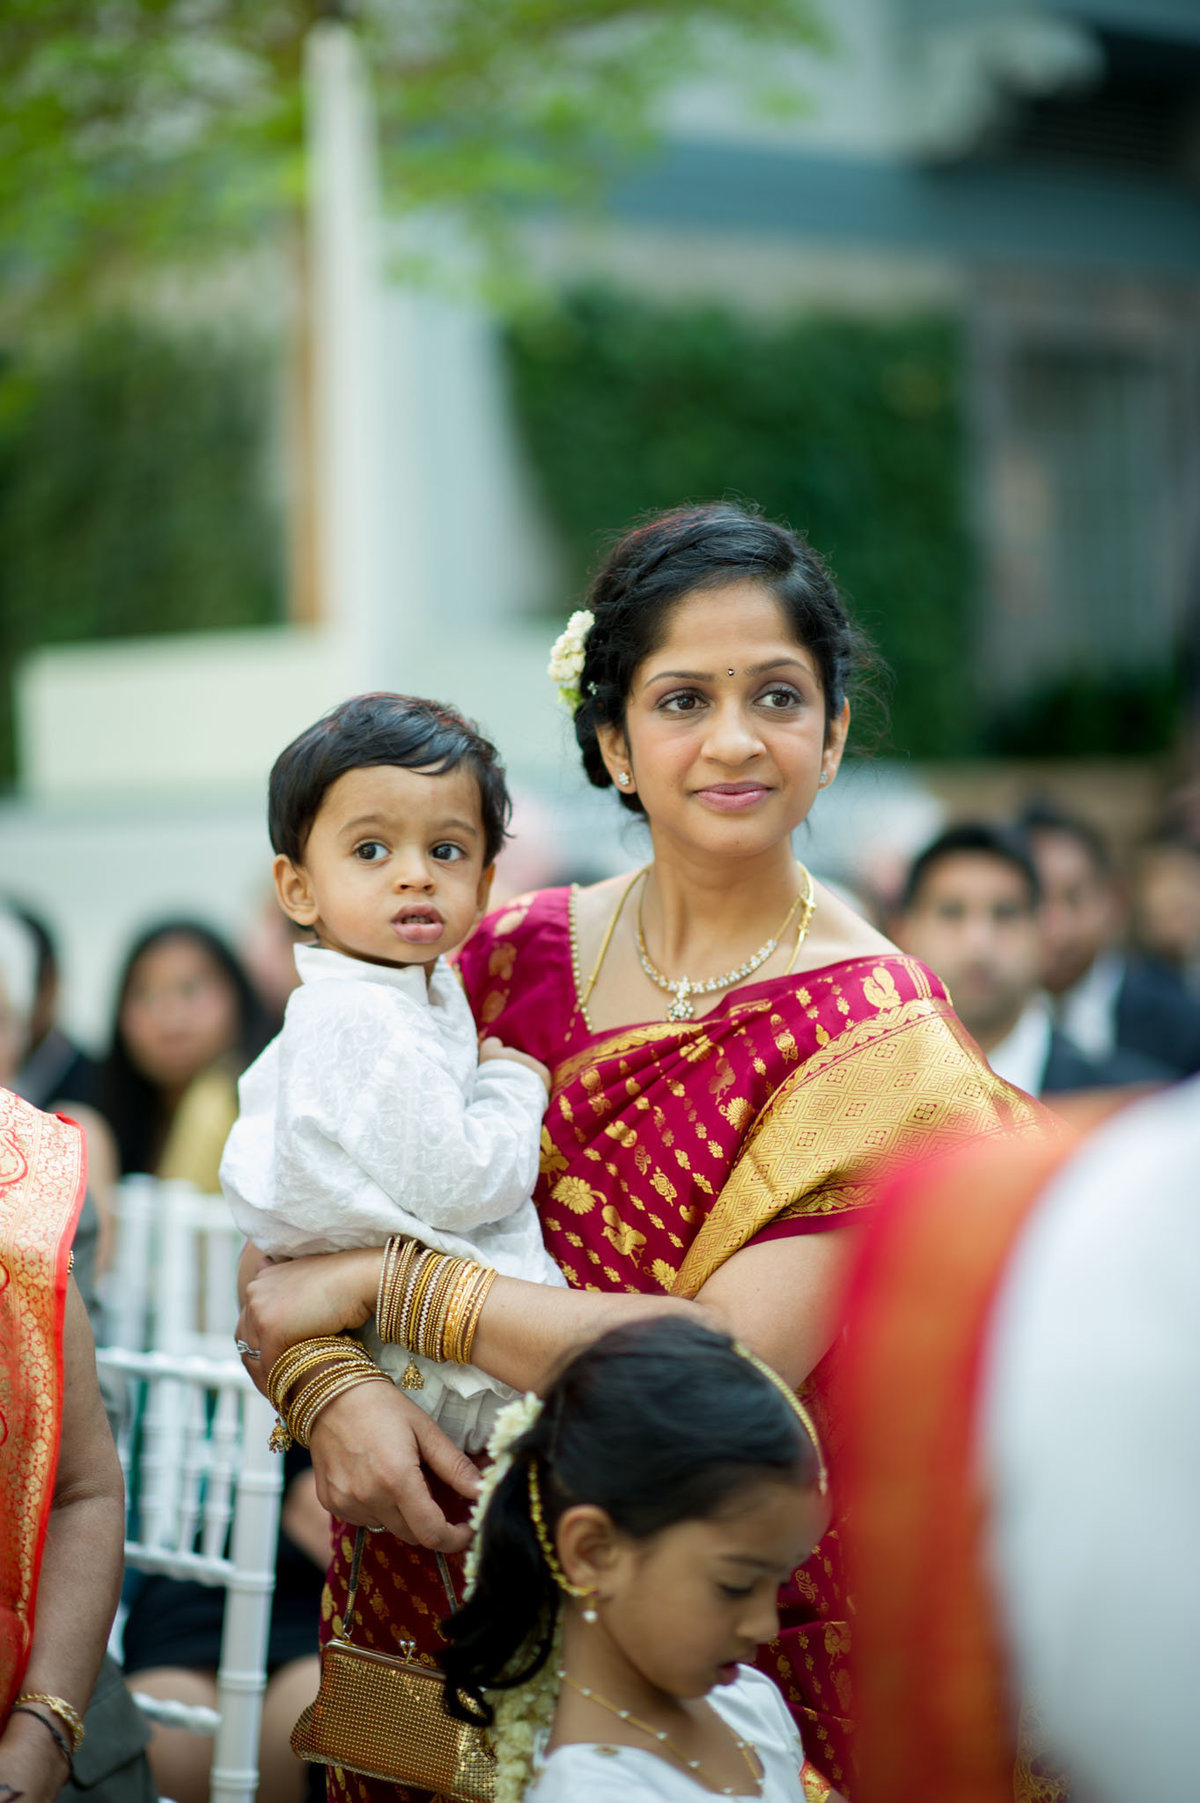 Harold-Washington-Library-South-Asian-Wedding-088